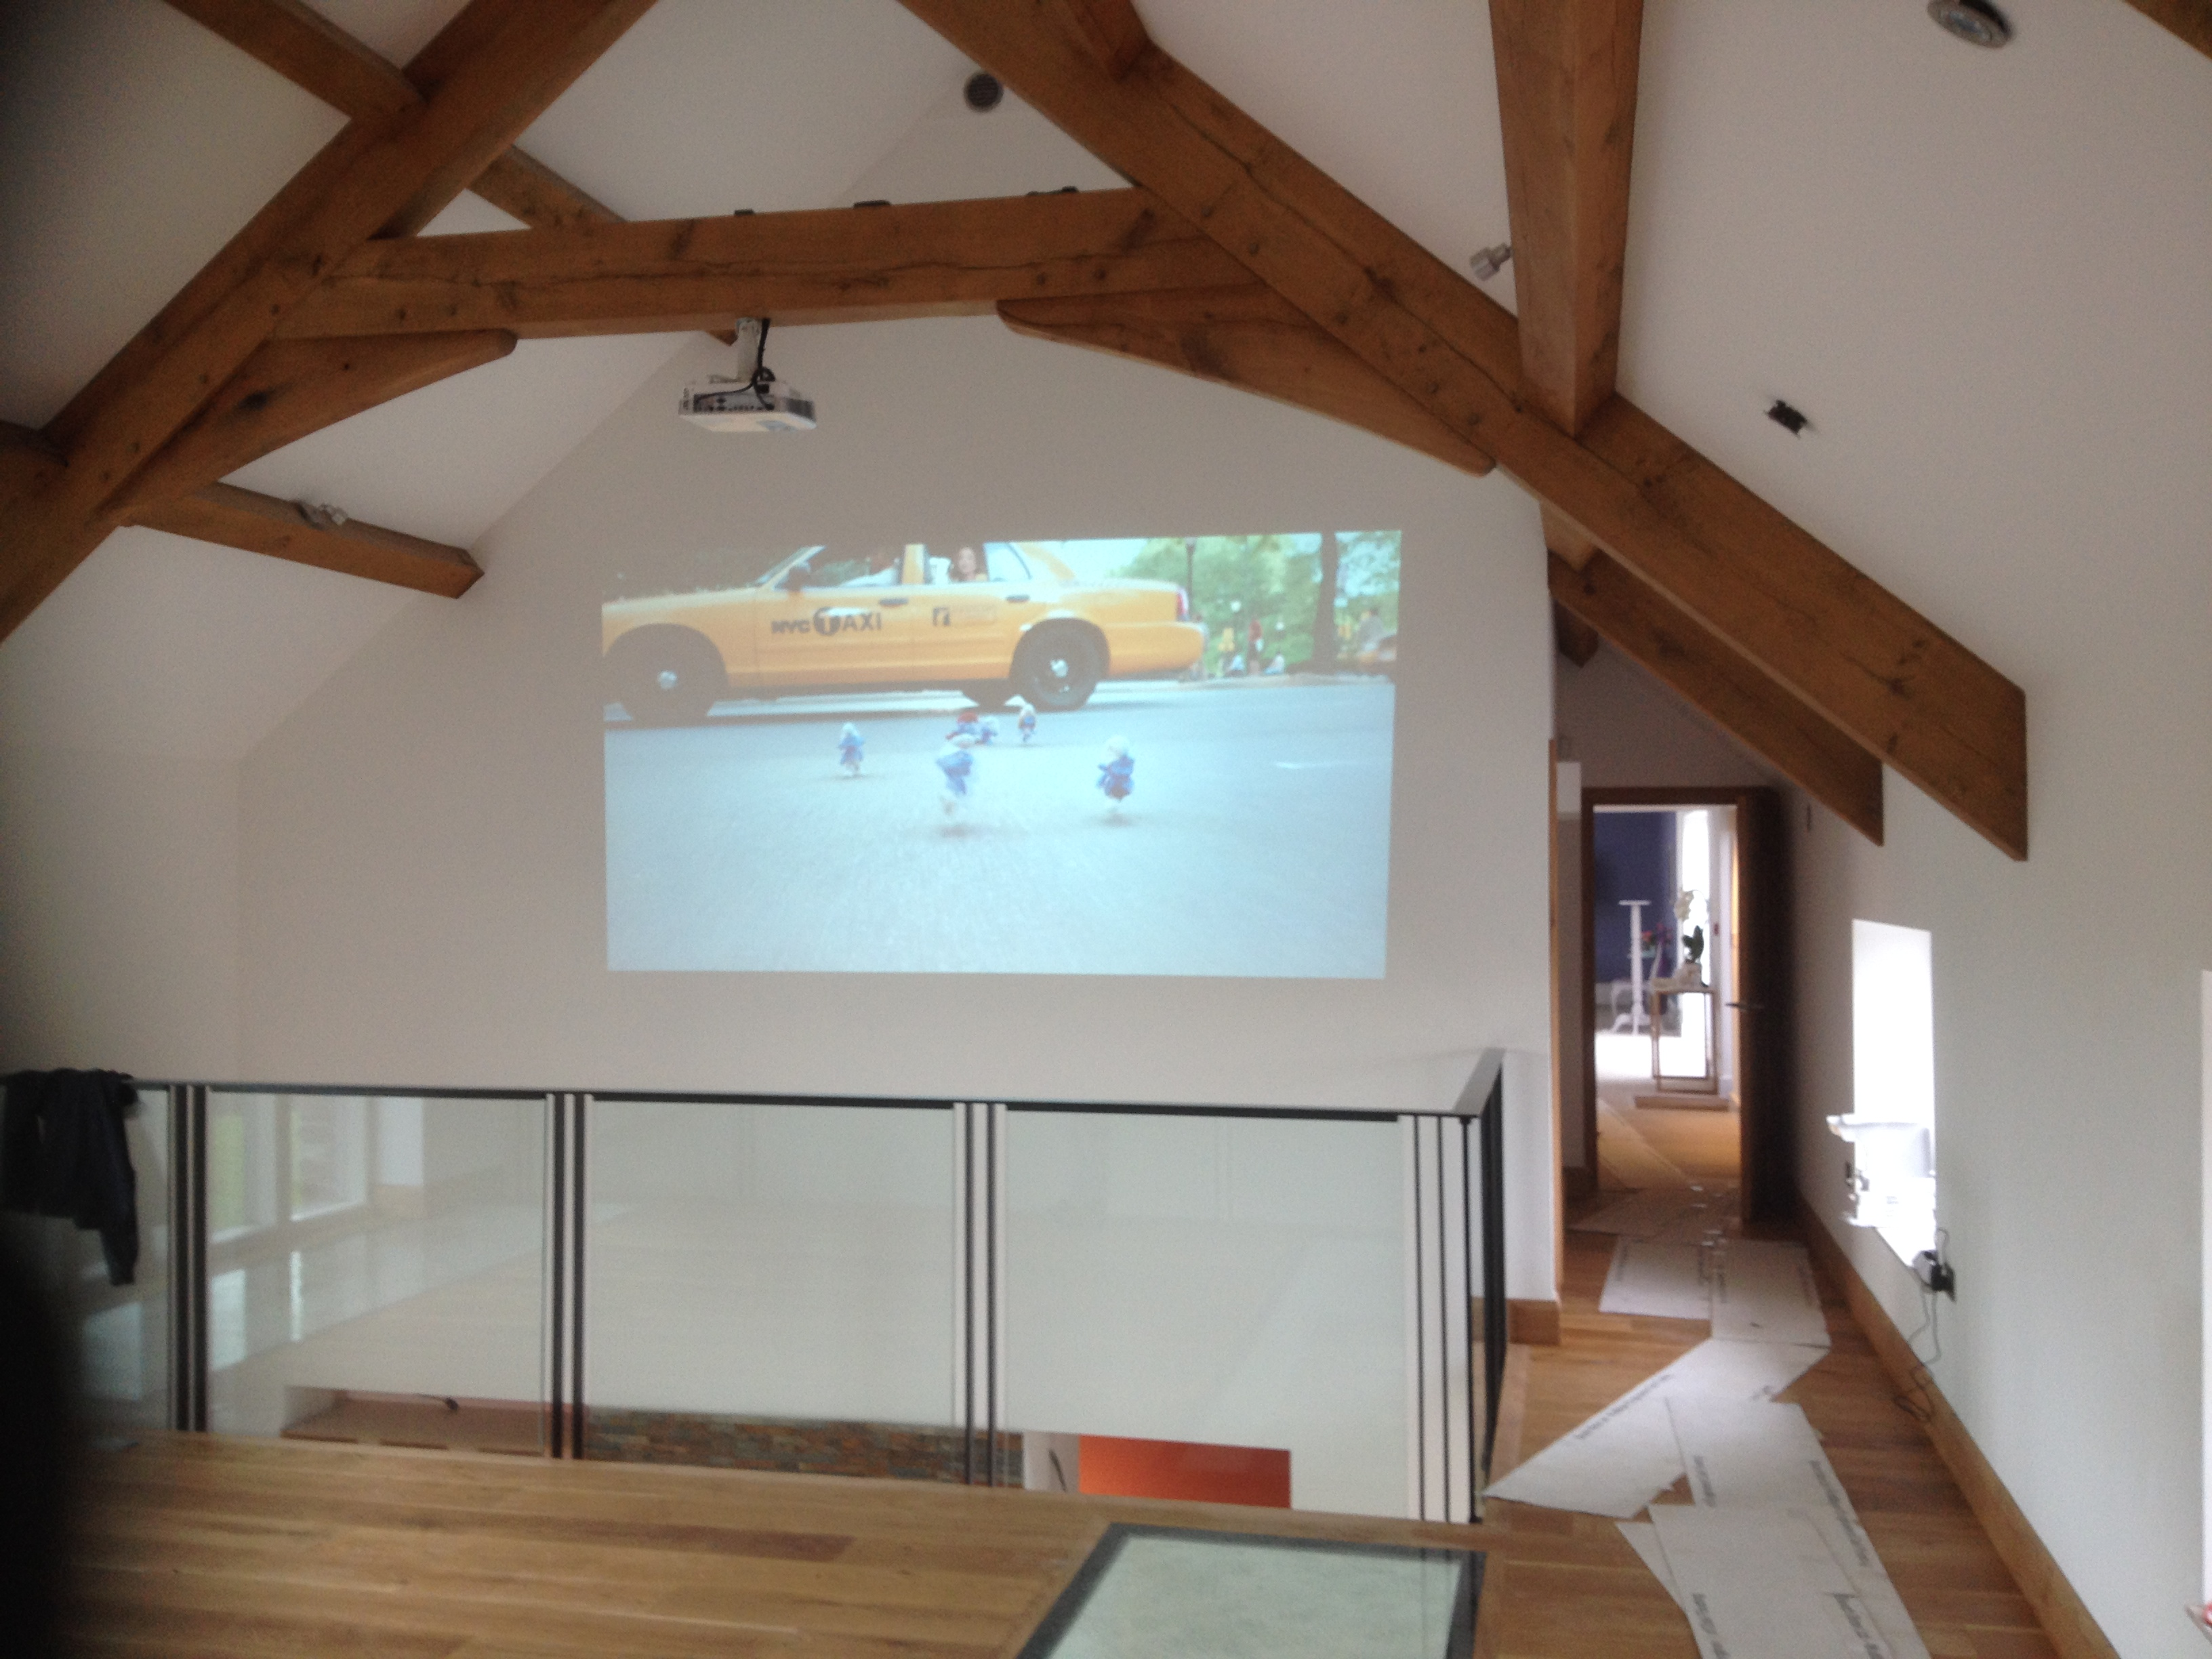 Projection Wall in Cornish Barn